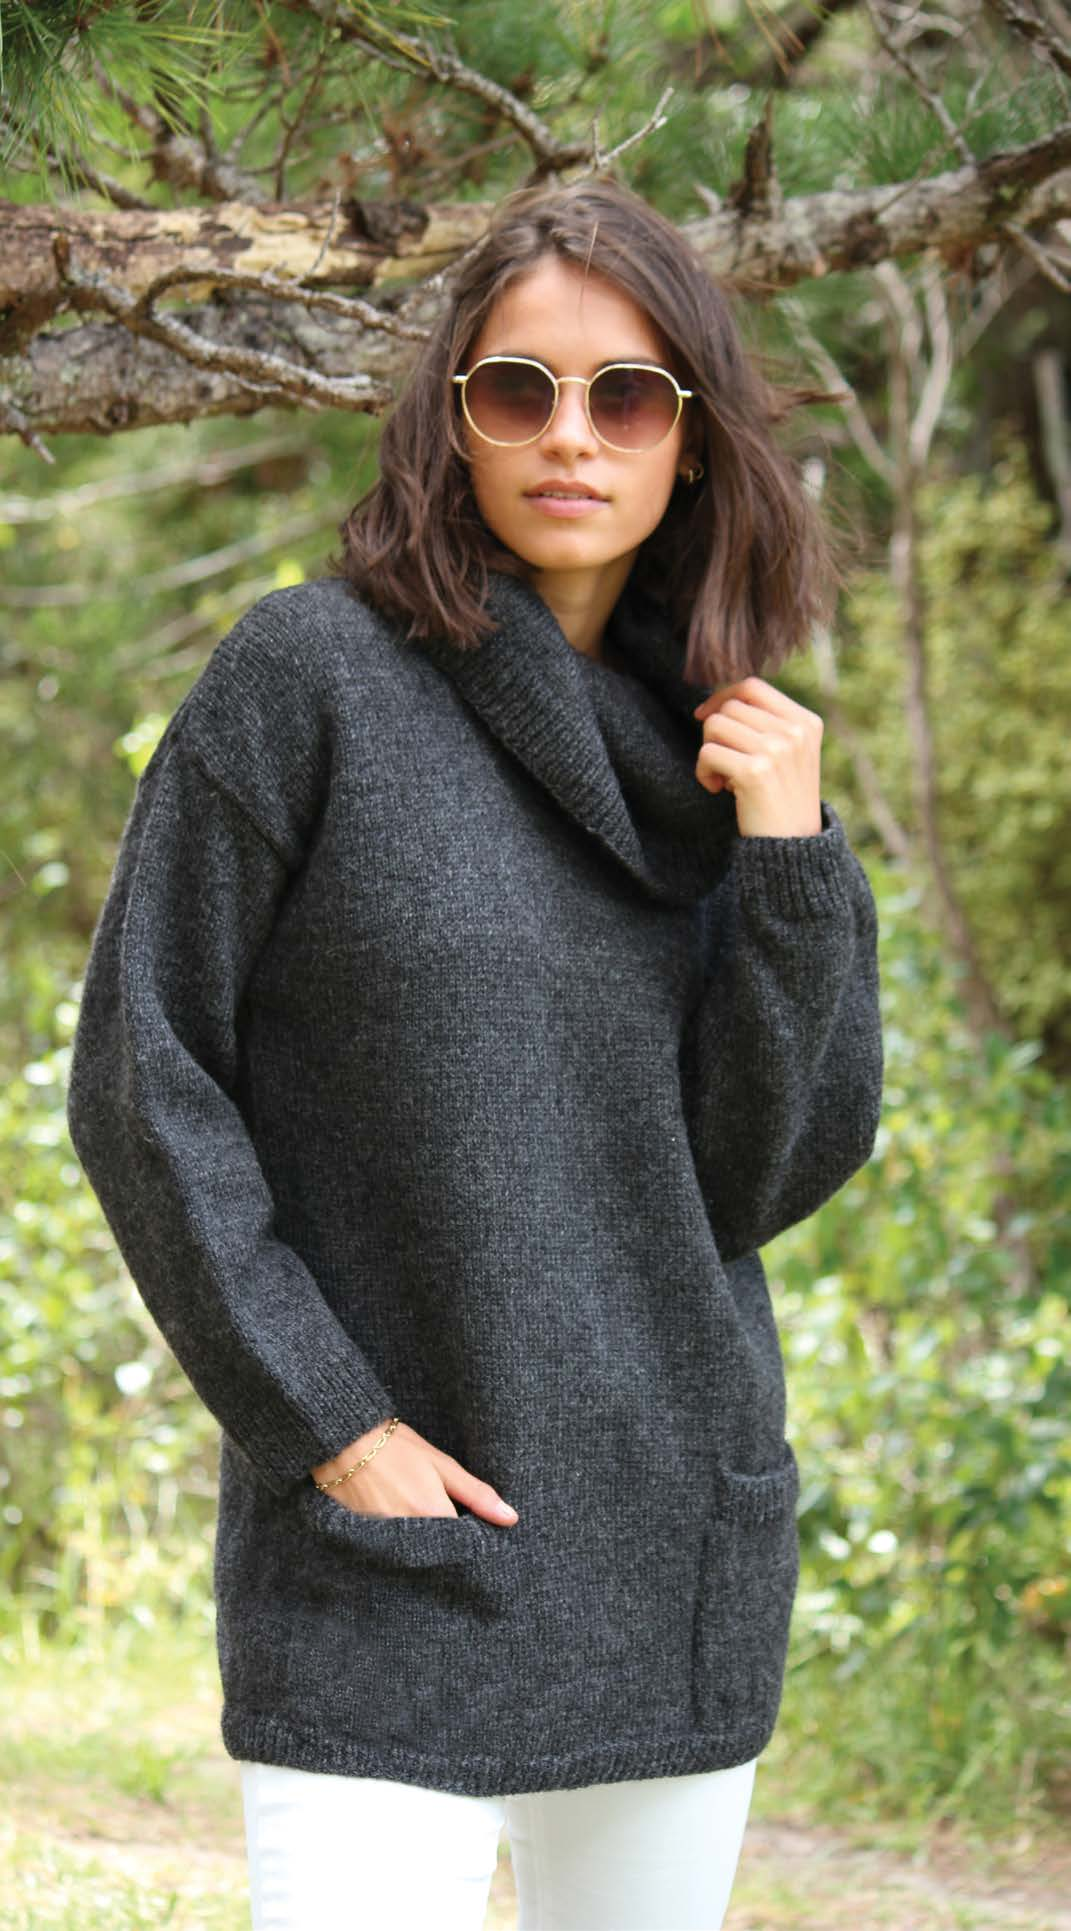 Crucci Knitting Pattern 2014 Longline Sweater With Cowl Collar - Digital